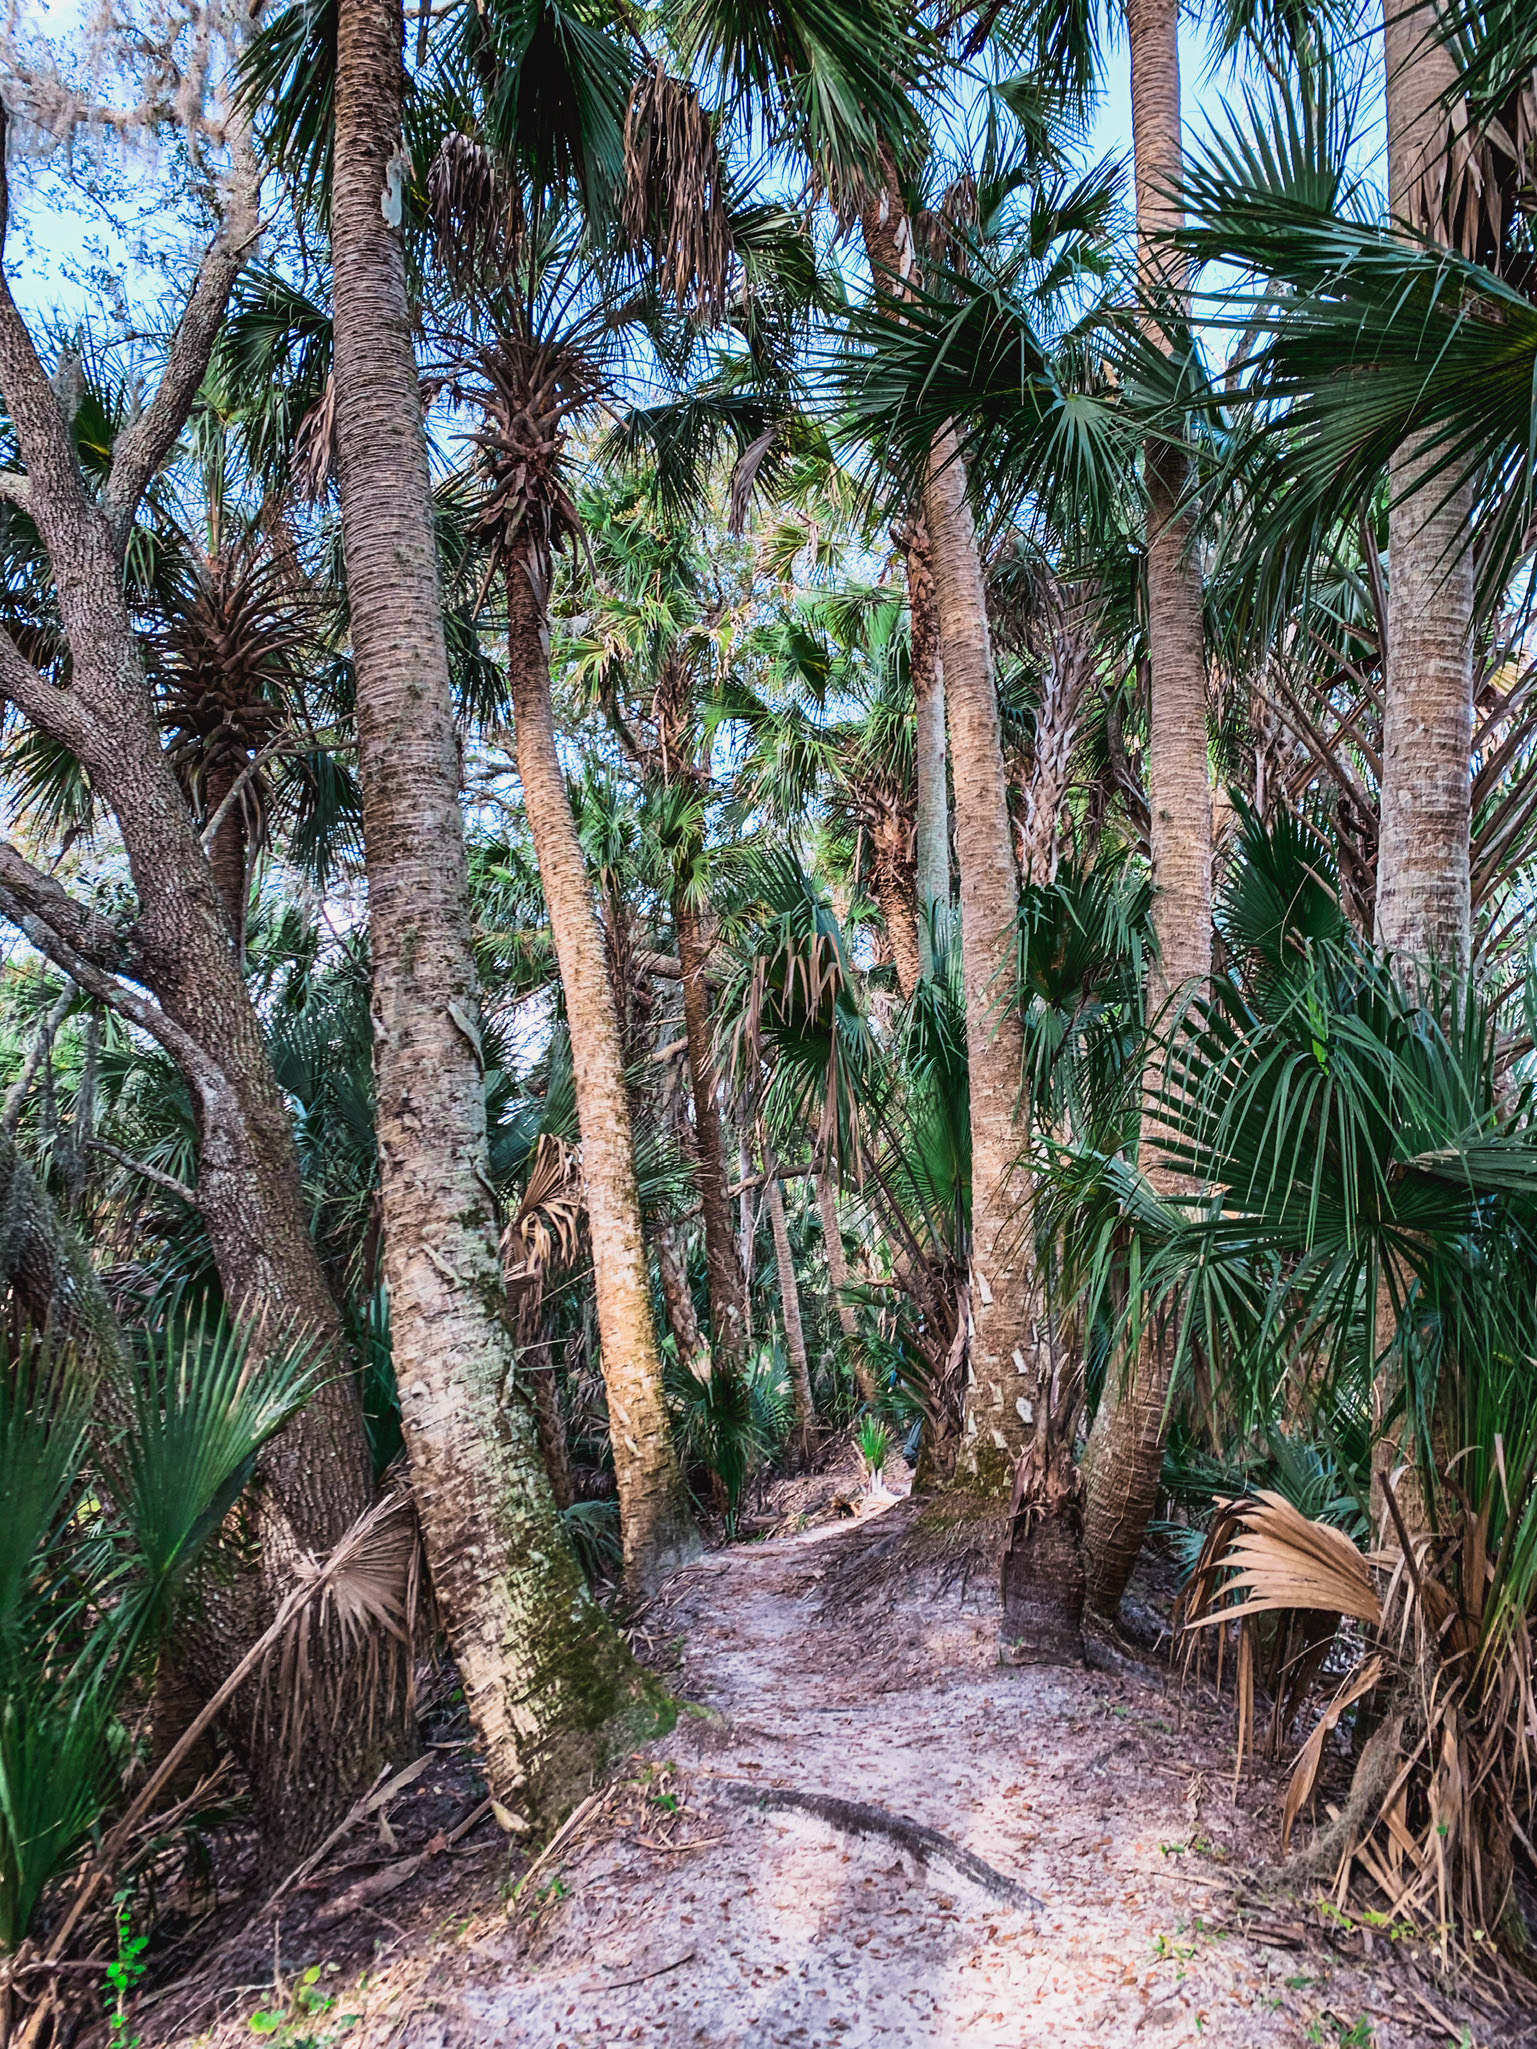 hiking trails in Central Florida